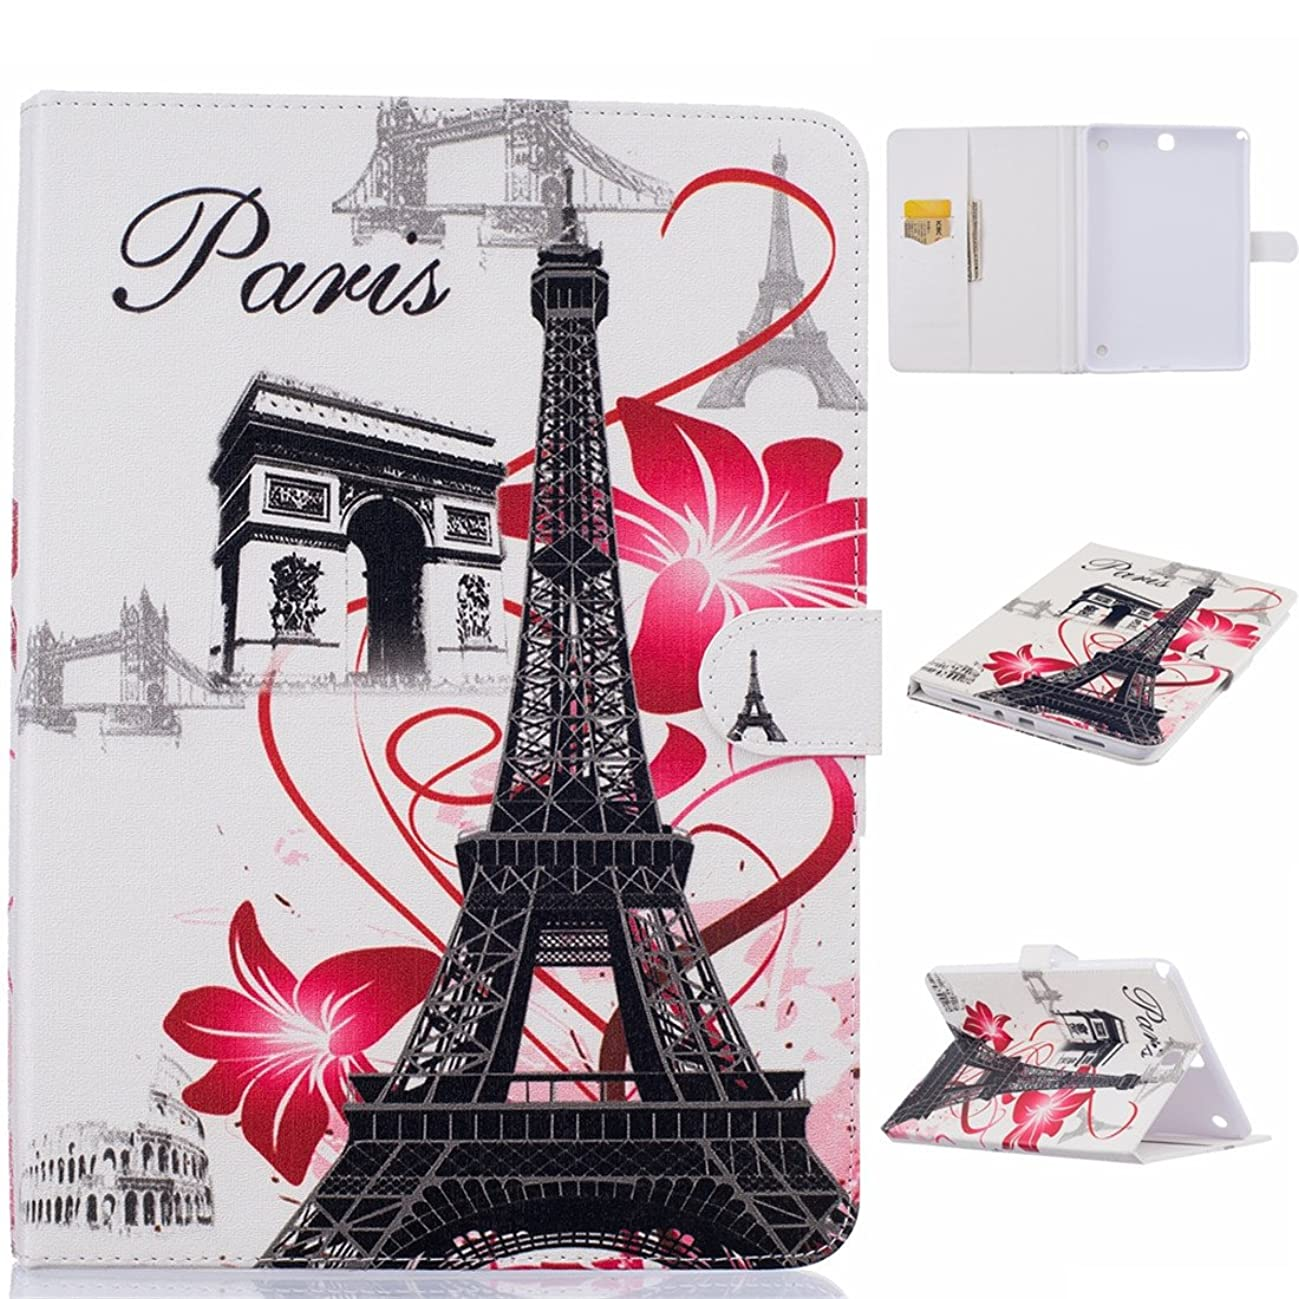 Galaxy Tab A 9.7 Case, Love Sound PU Leather Slim Fit Shell Stand Folio Protective Case with Card Holders & Cash Slot Magnet Cover for Samsung Galaxy Tab A 9.7 Inch Tablet SM-T550, Paris